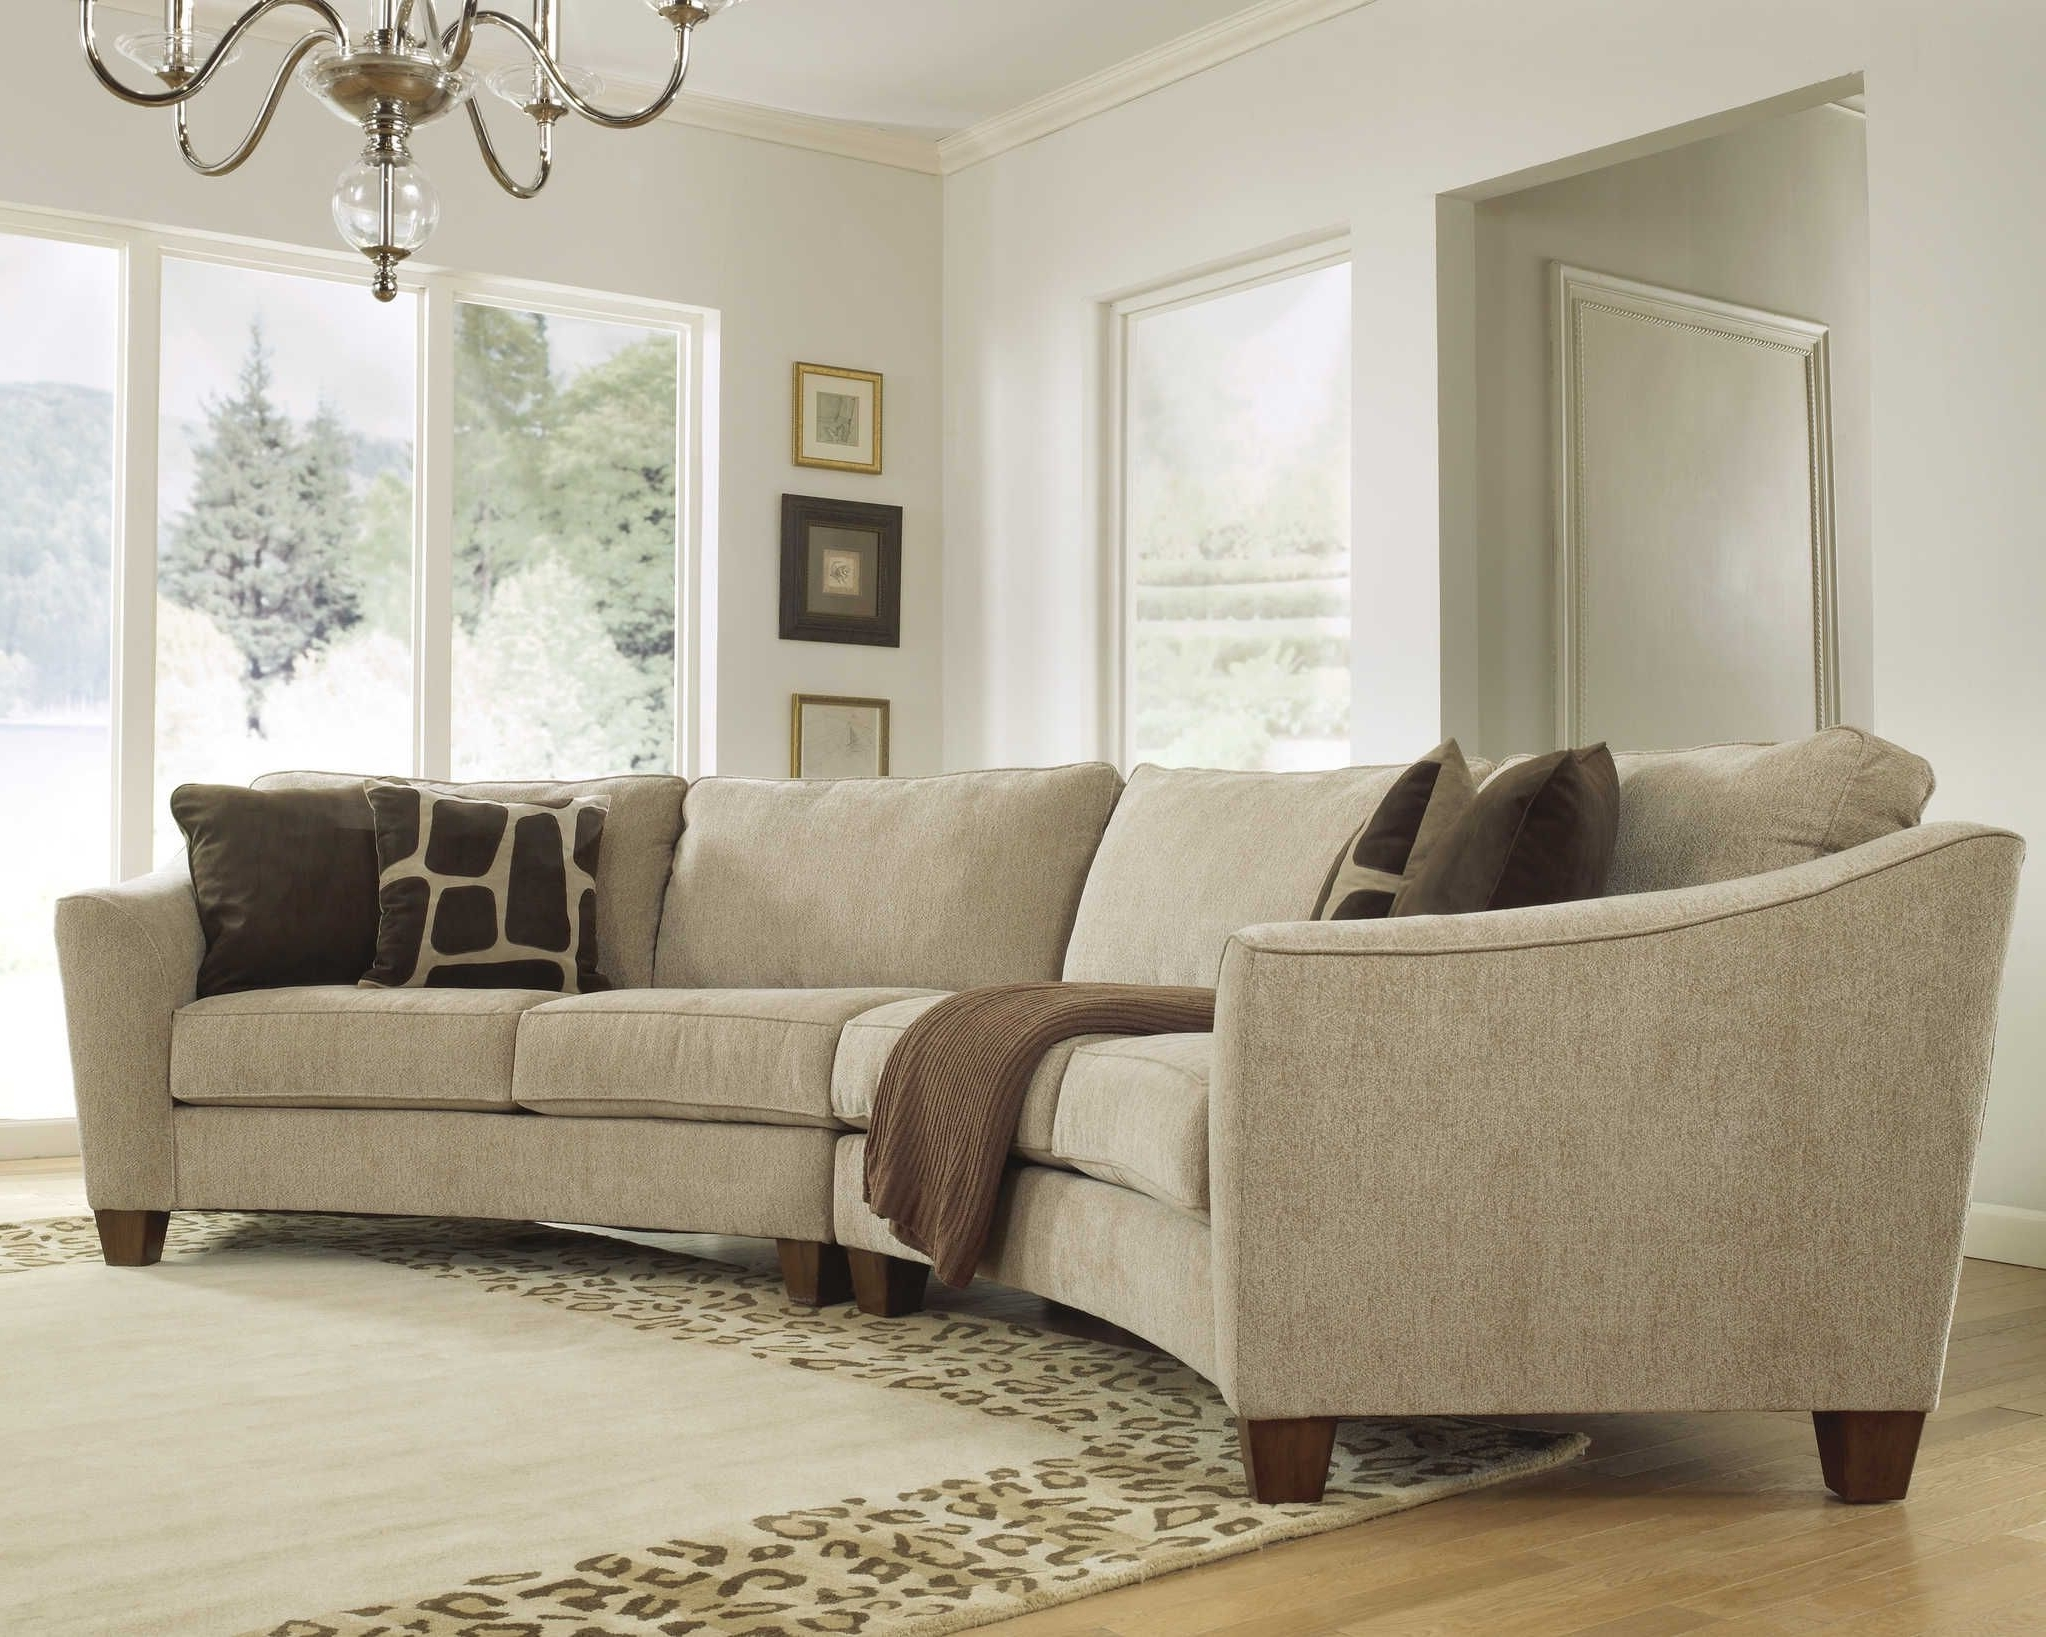 Curved Sectional Sofa Set – Rich Comfortable Upholstered Fabric For Most Recent Rounded Corner Sectional Sofas (View 5 of 20)